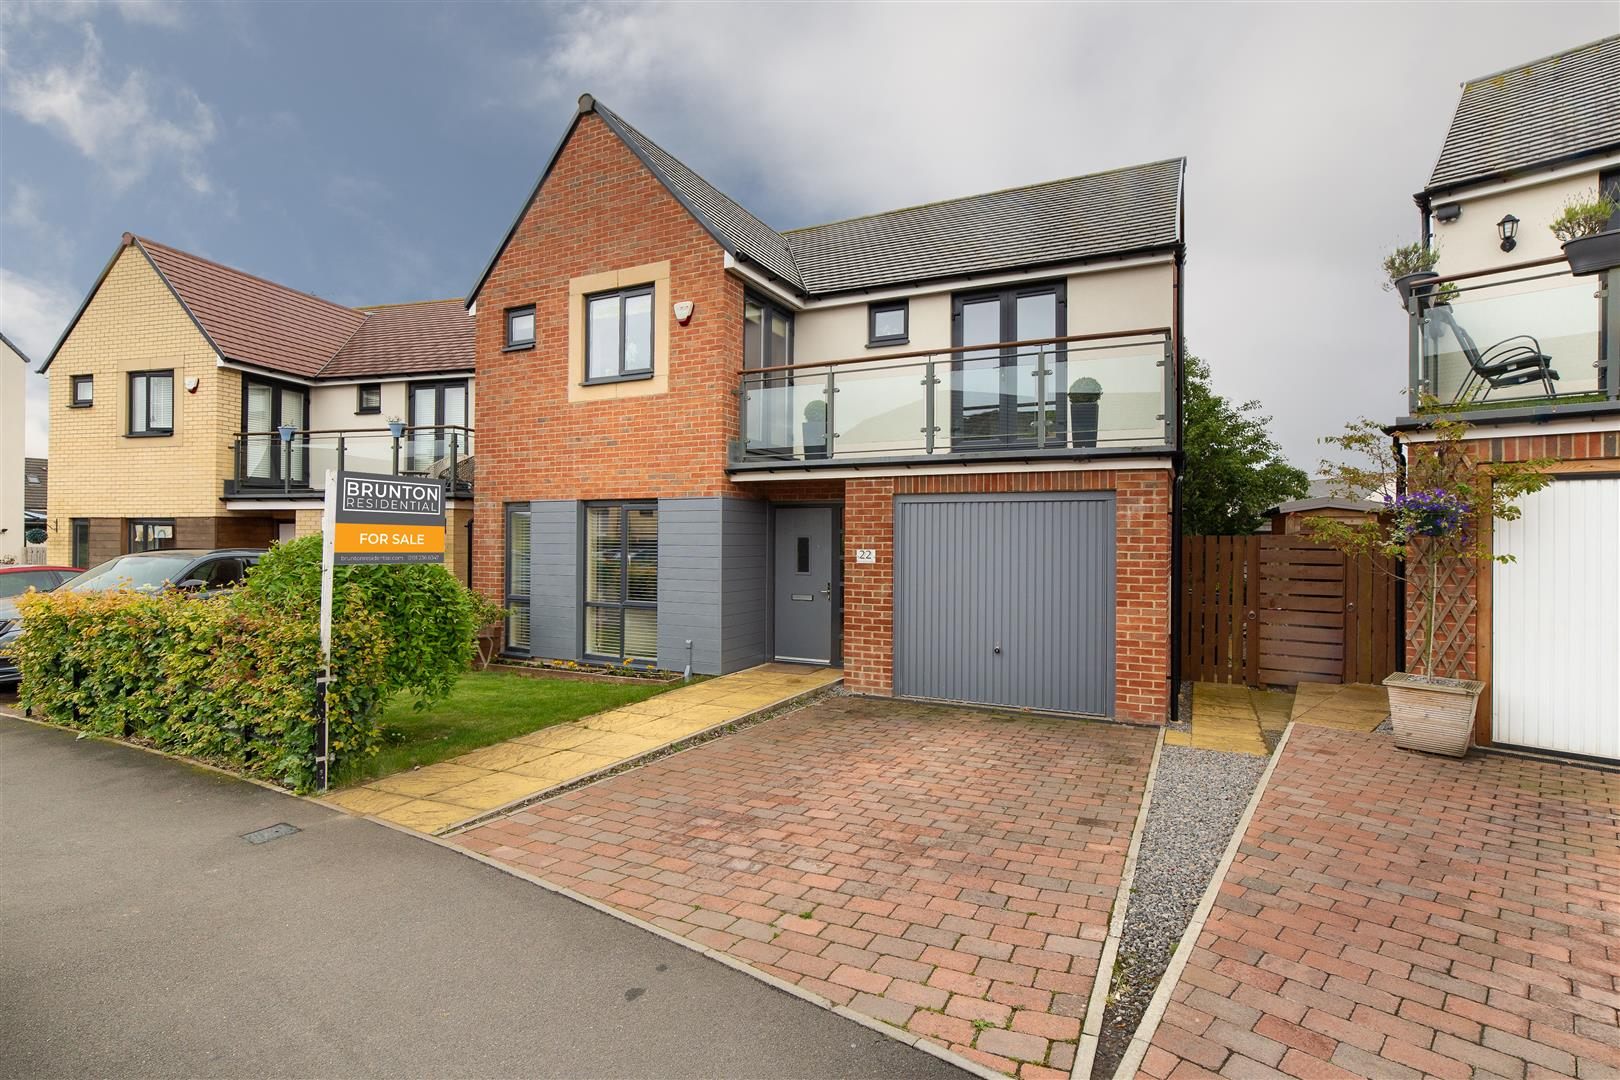 4 bed detached house for sale in Newcastle Upon Tyne, NE13 9AT, NE13